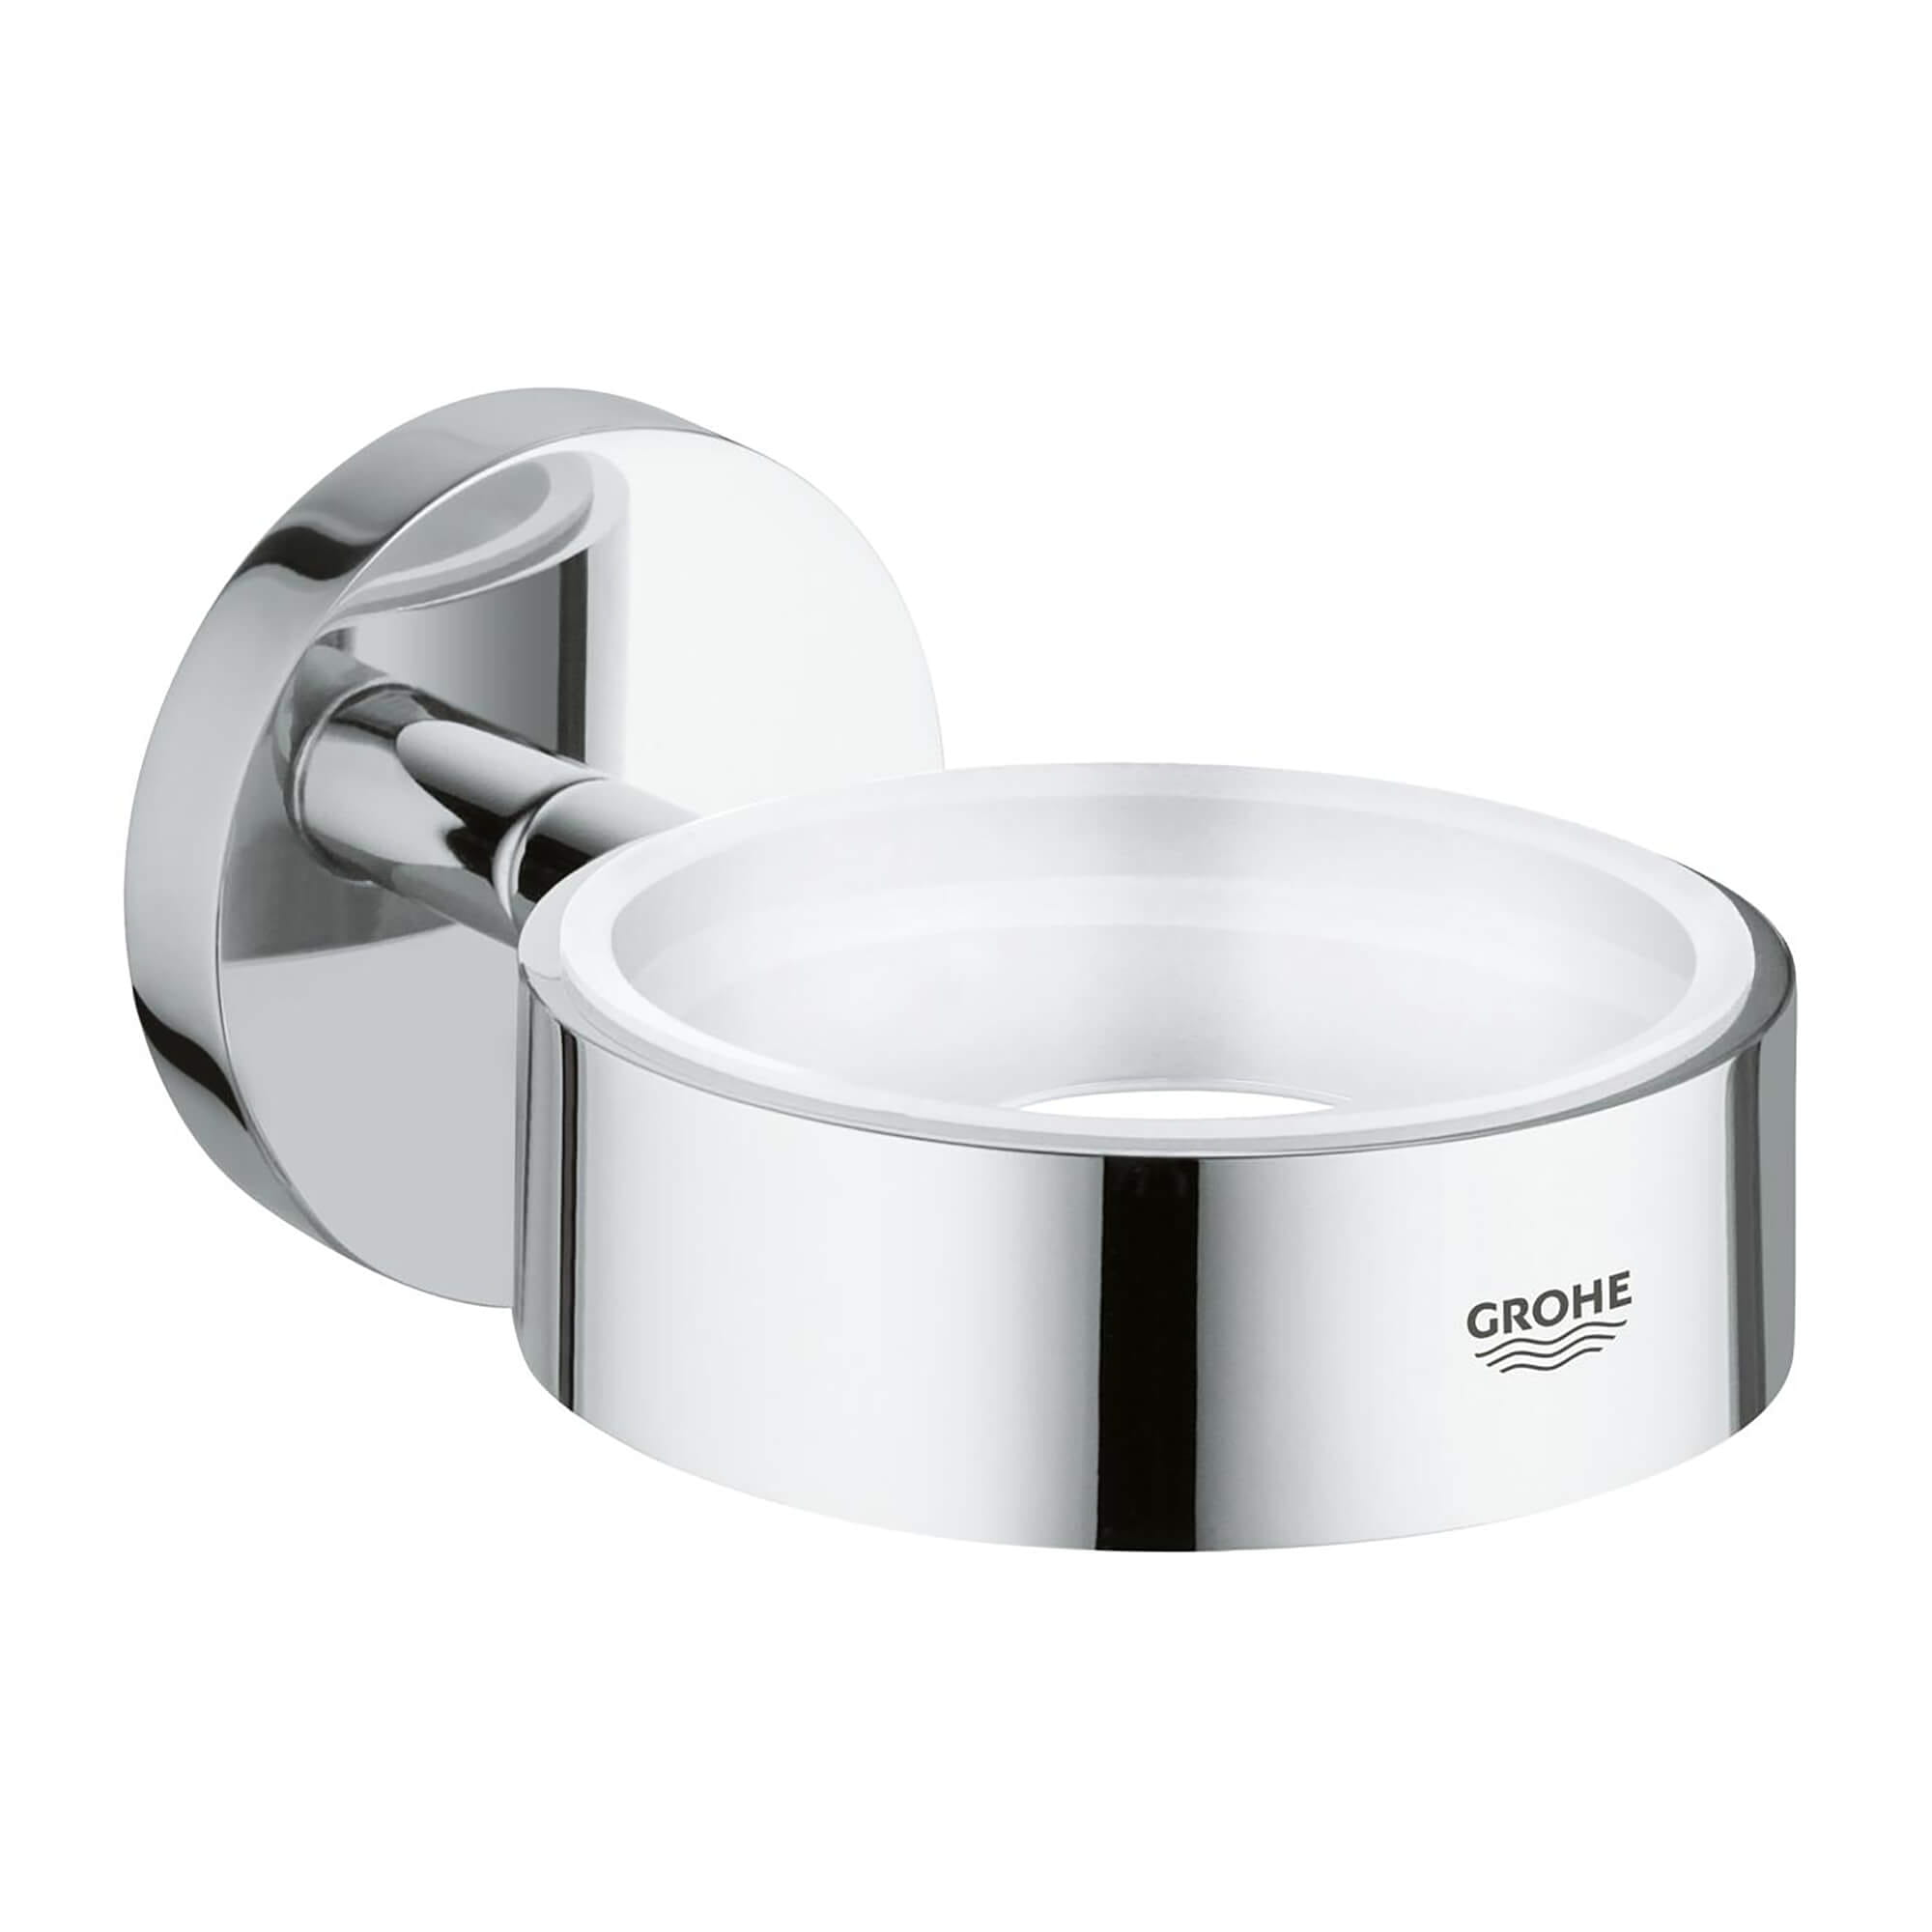 Holder FGlas Soap Dish Disp GROHE CHROME